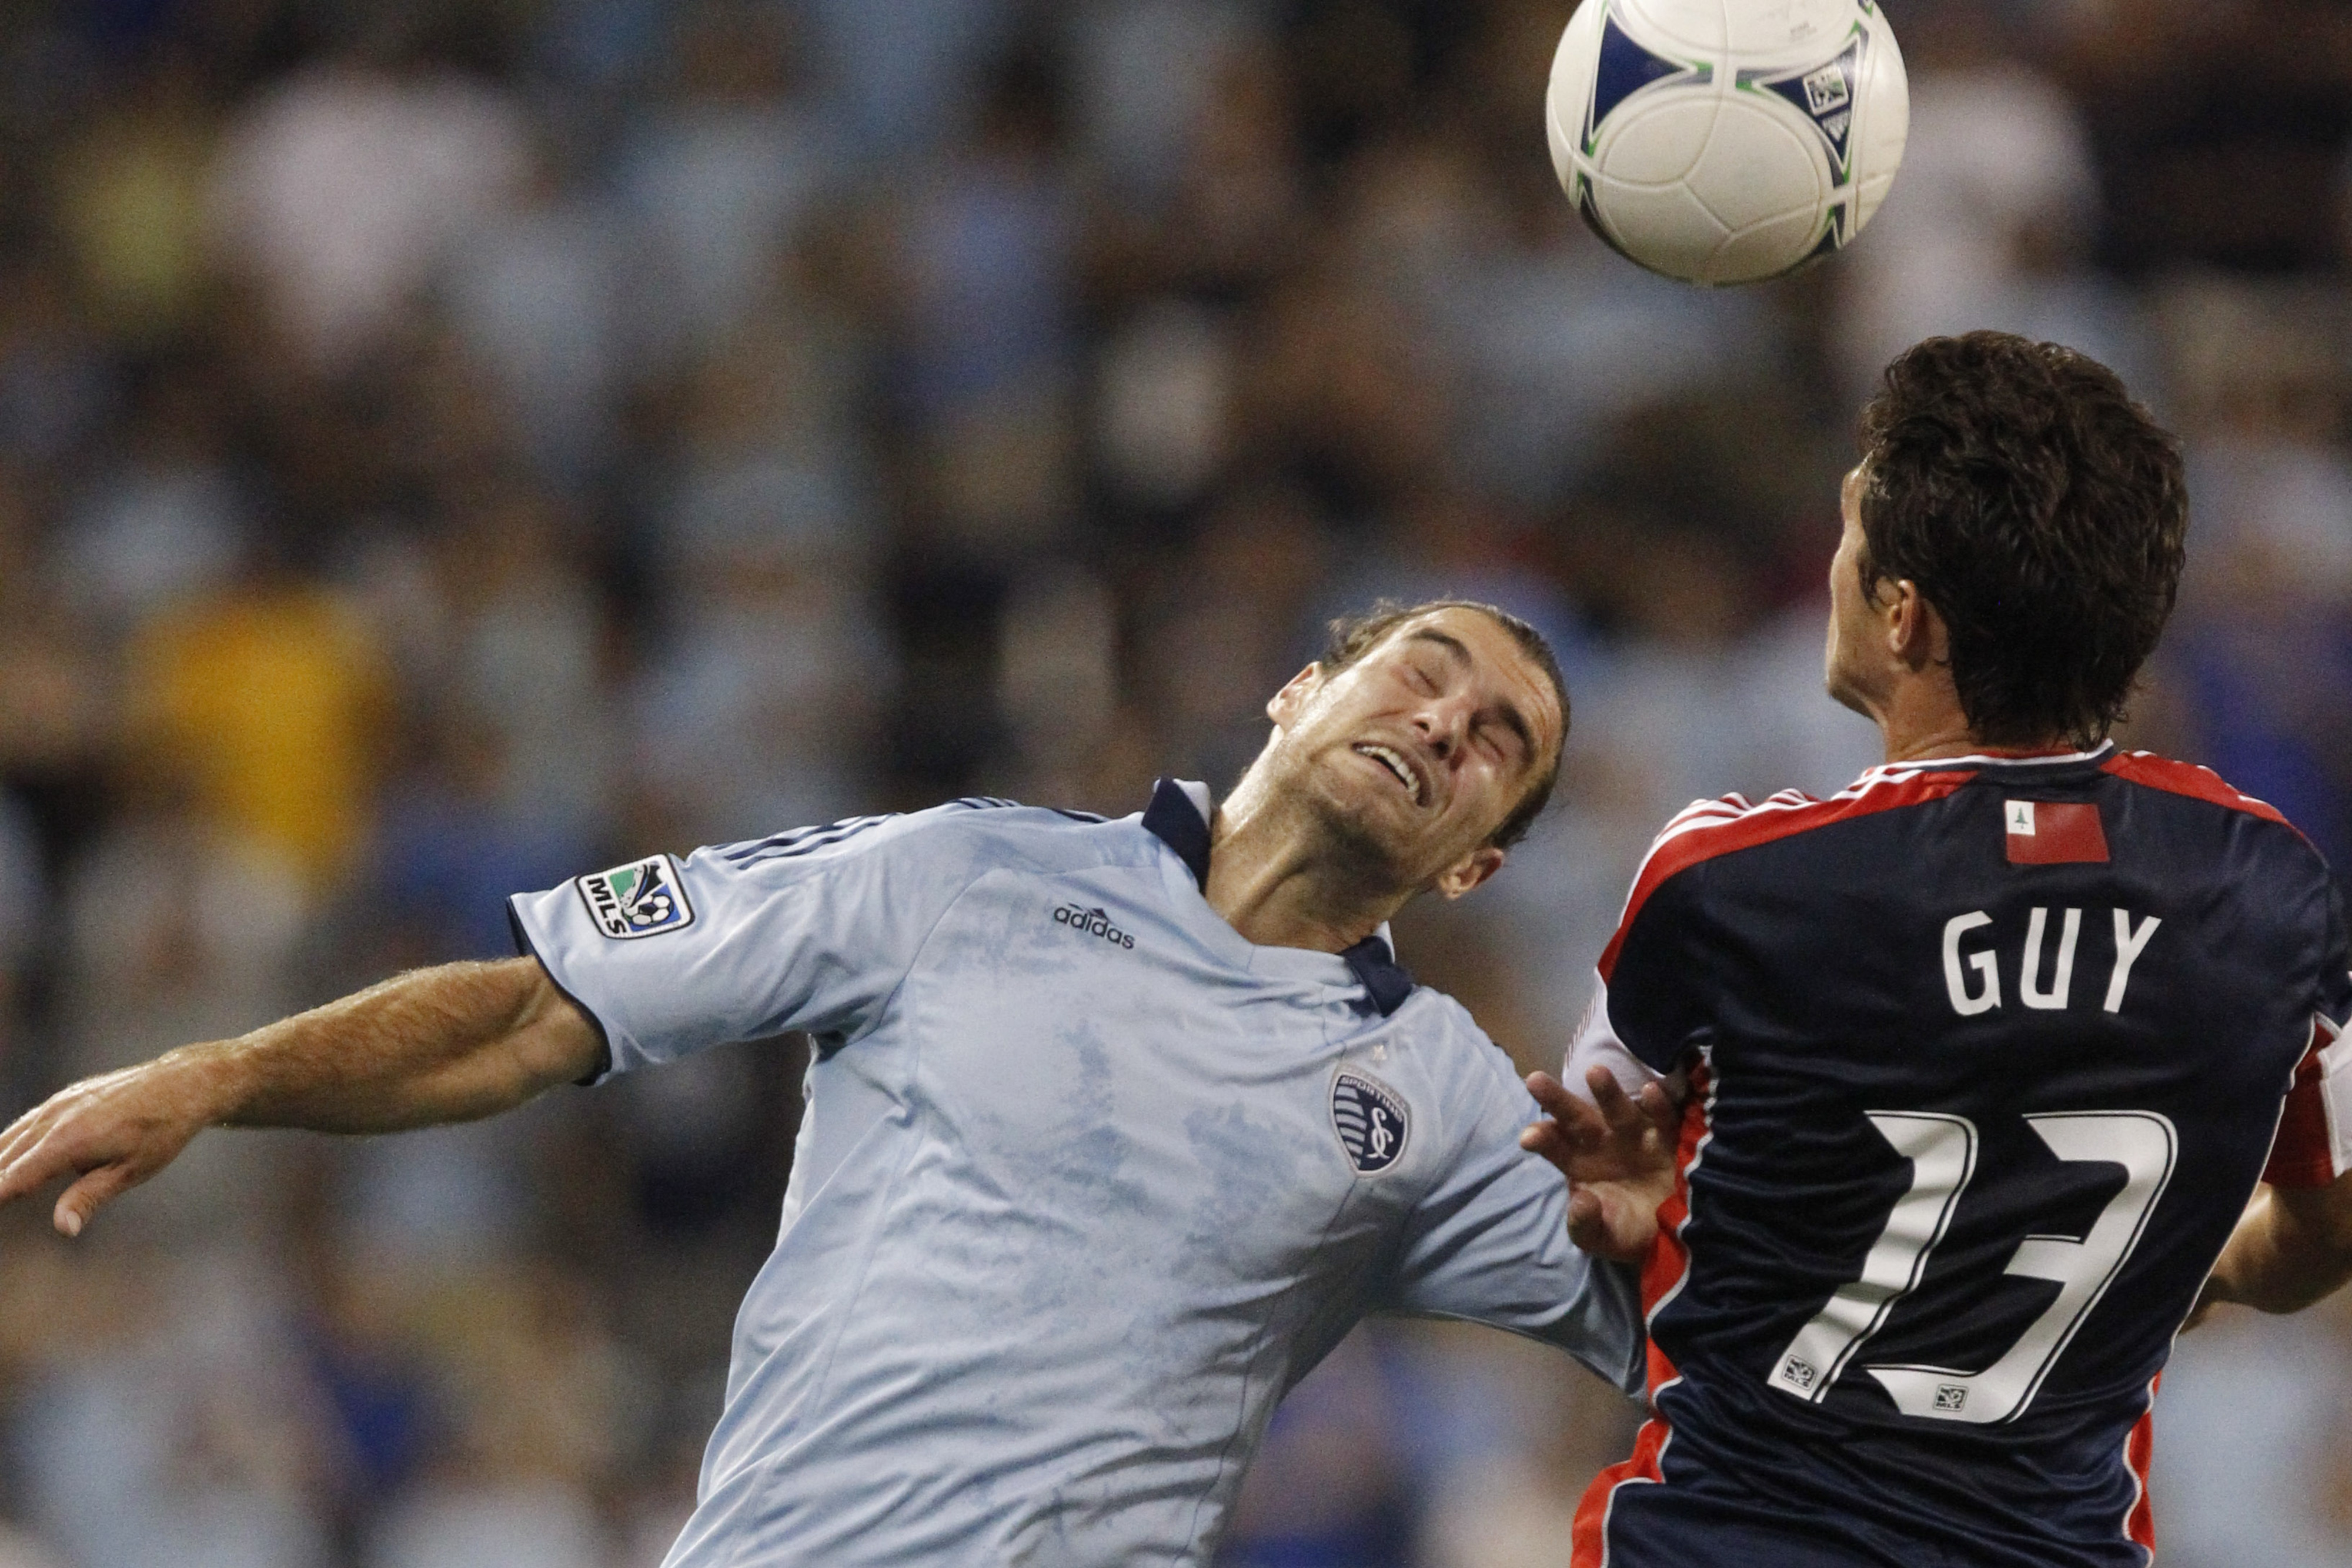 Ryan Guy (selected 22nd in 2007 MLS SuperDraft) squares off with Graham Zusi (selected 23rd in 2009 MLS SuperDraft) this past summer.